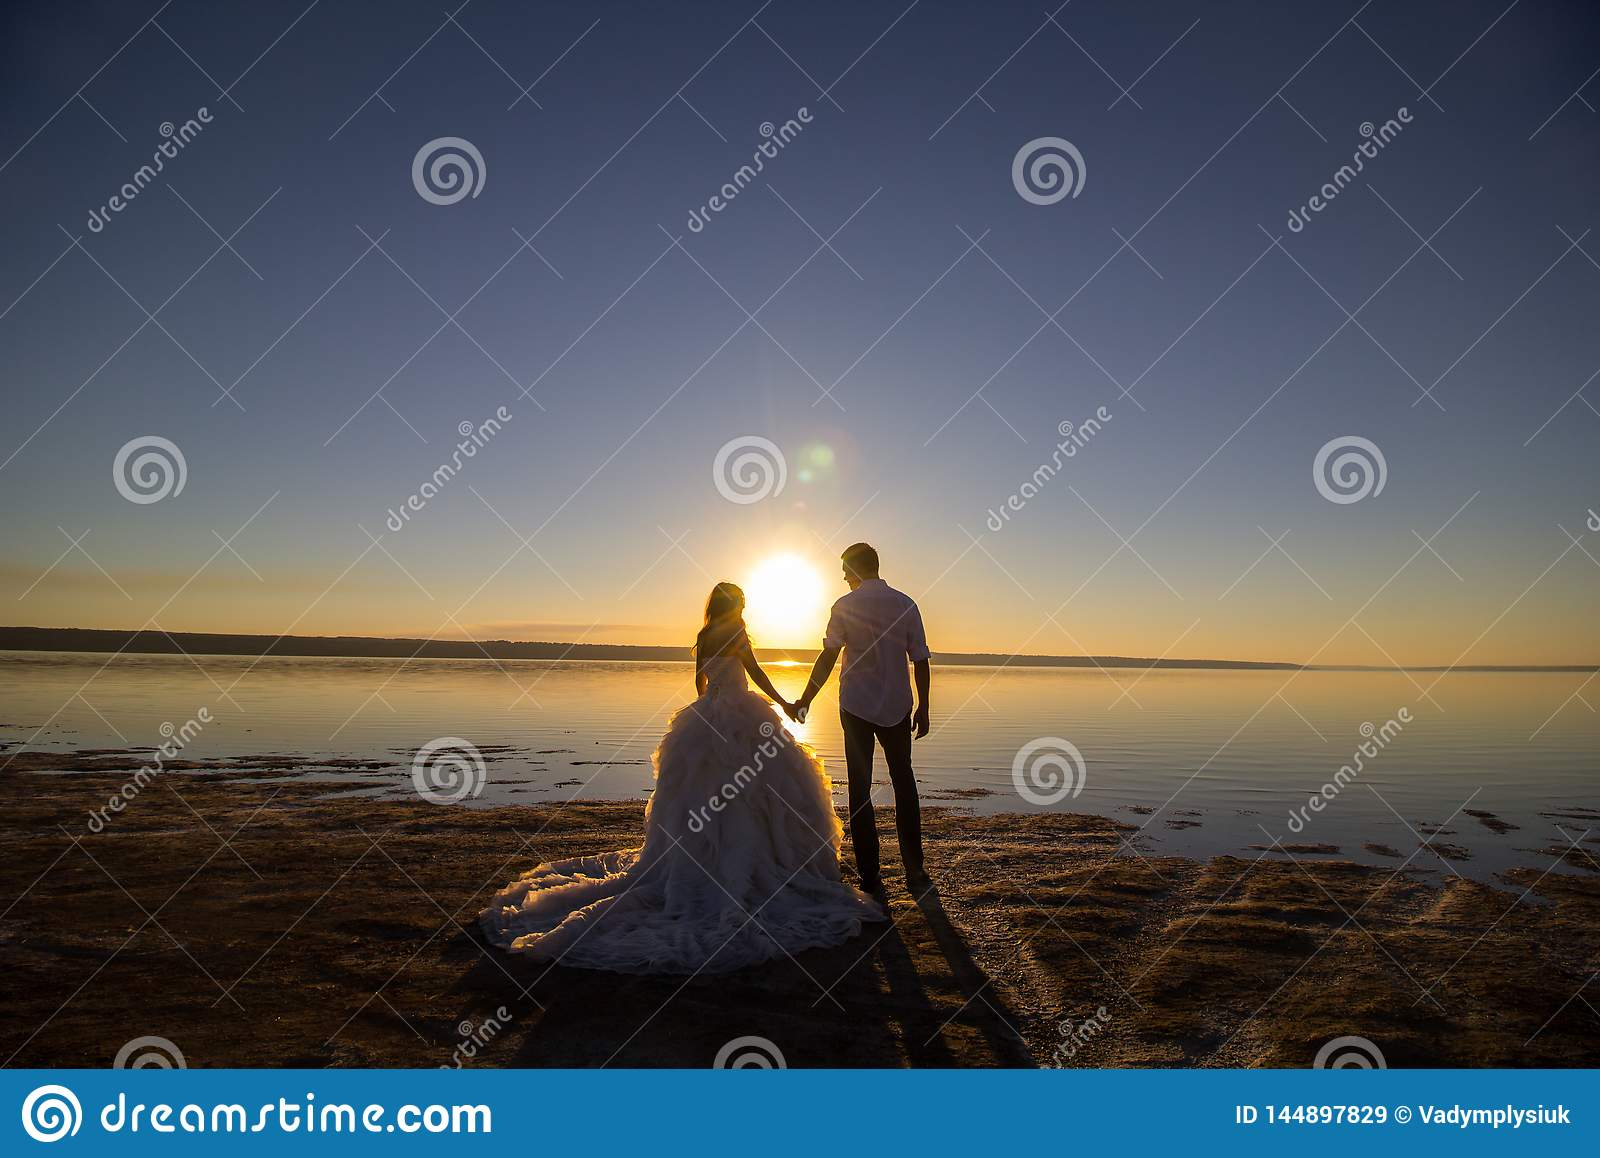 fa973be896 Wedding couple on the sea beach watching sunset. Sunny summer photo. Bride  with hair down in off shoulder dress with train. Ocean romantic ceremony.